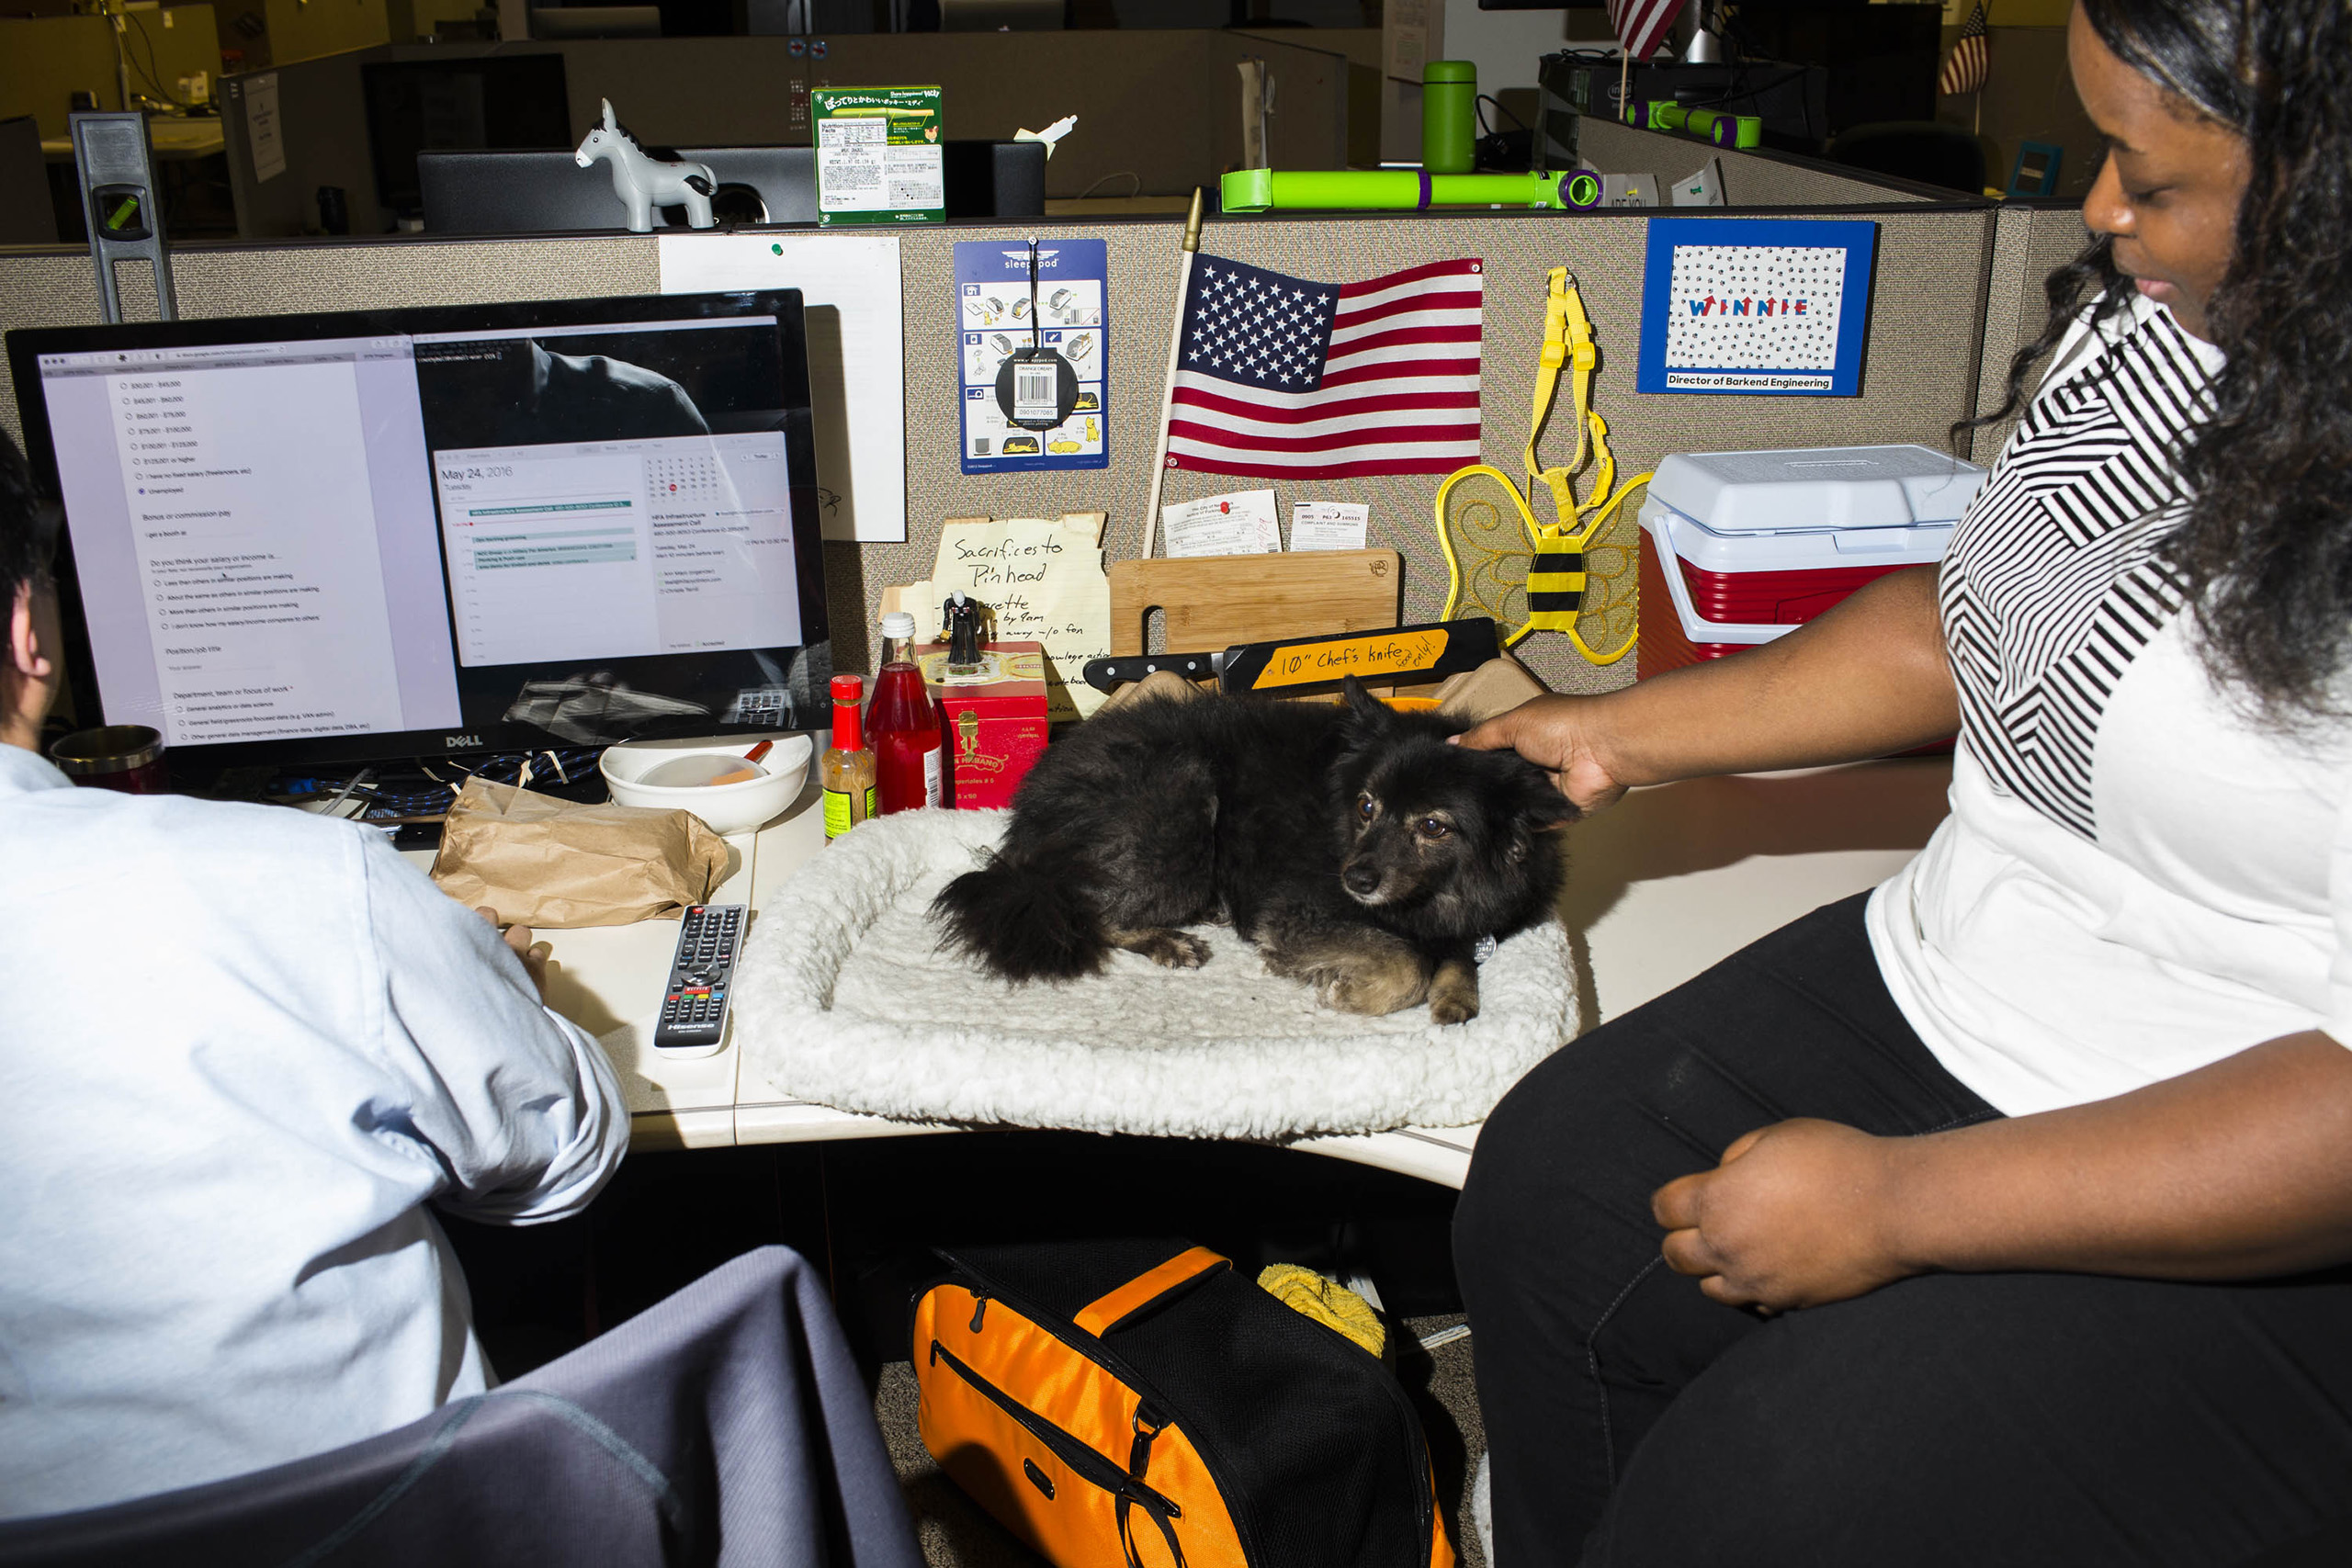 Clinton's campaign started off with just enough staffers to fill a corner of her office but has since expanded to two full floors of cubicles and shared work spaces for her army of field, data and communications aides. A dog at the campaign headquarters of Hillary Clinton on May 24, 2016, in Brooklyn, NY.